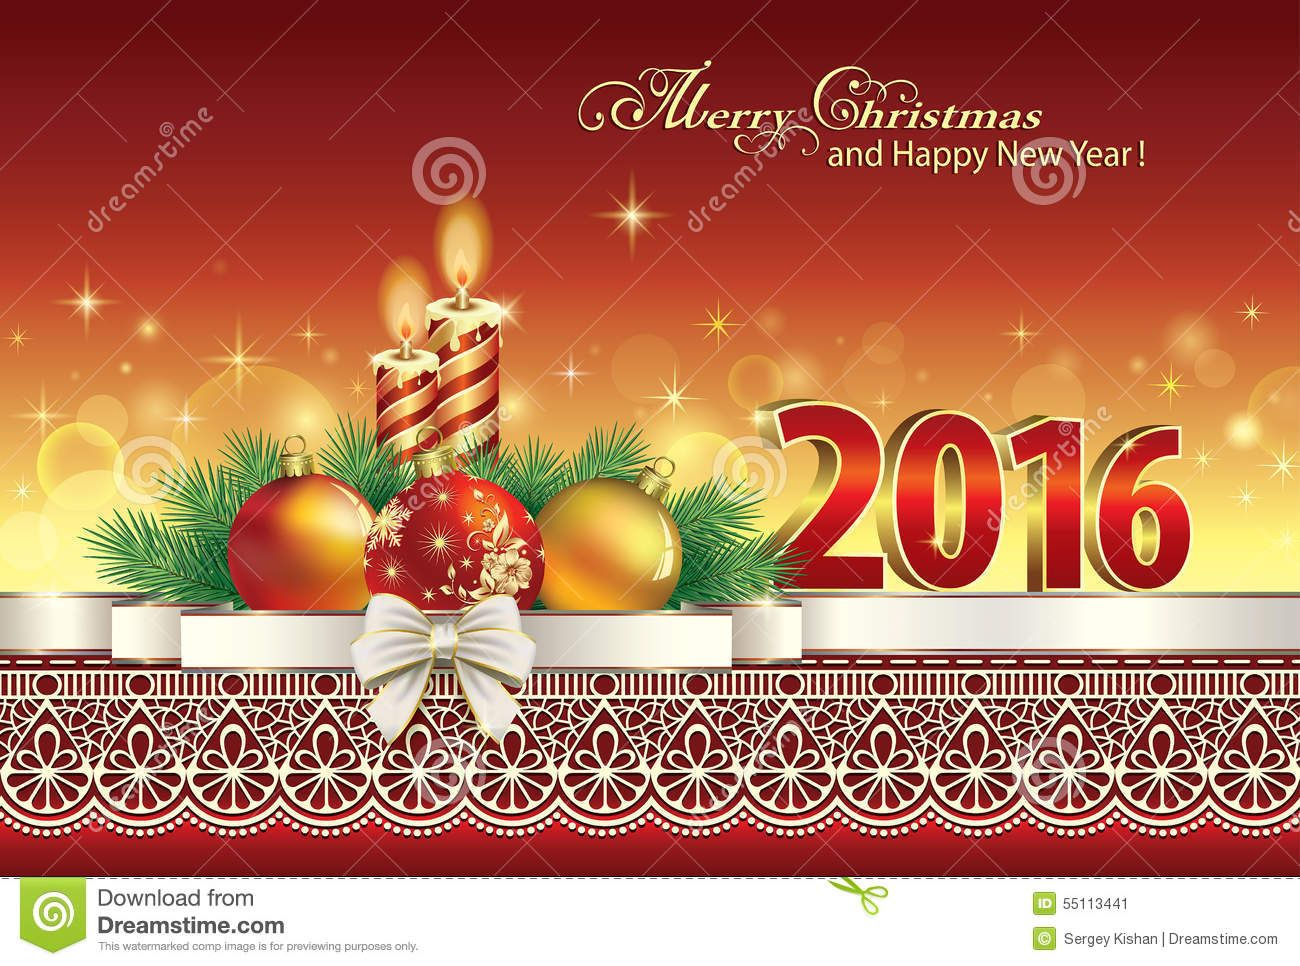 Happy new year 2016 webdesign pinterest year 2016 xmas best merry christmas 2016 wishesquotes and greetings kristyandbryce Choice Image